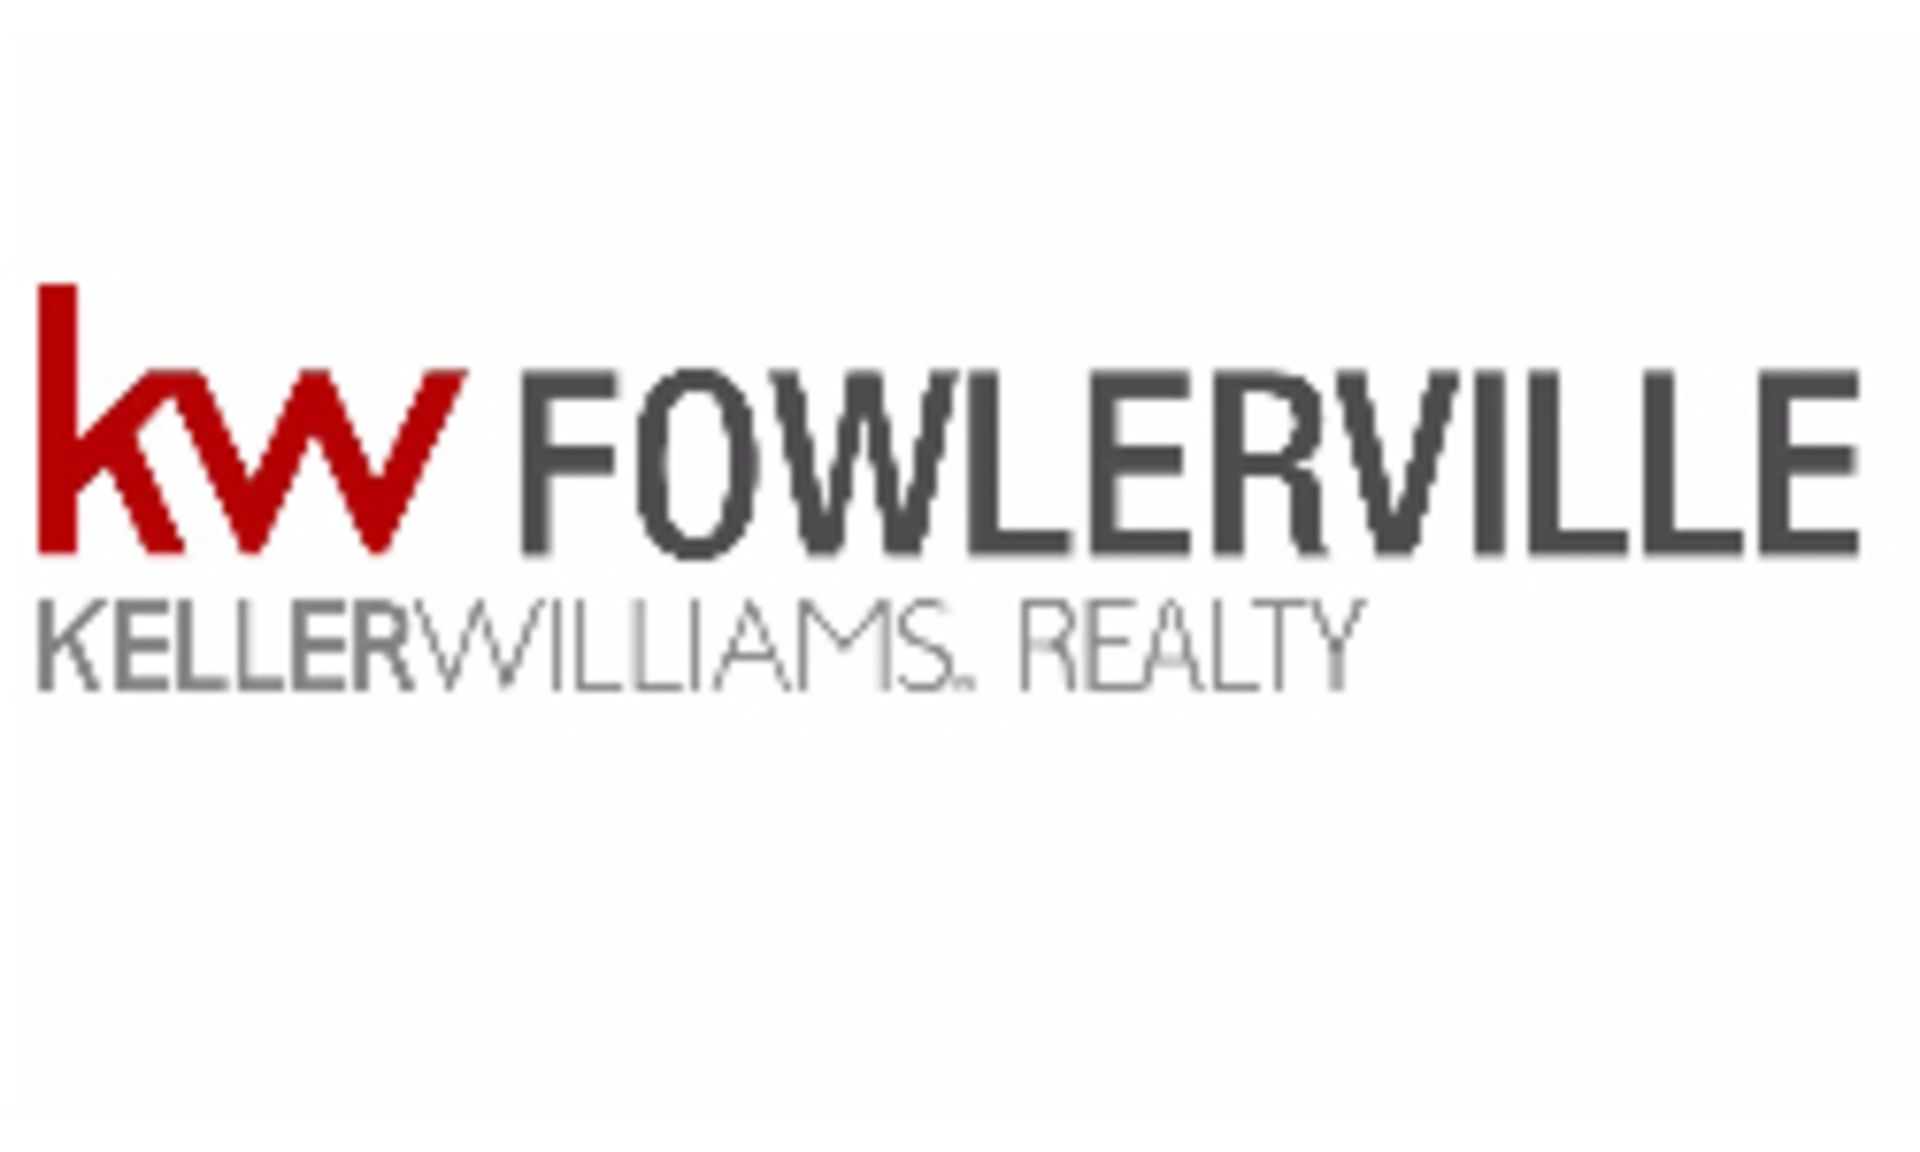 Fowlerville Keller Williams Realtors